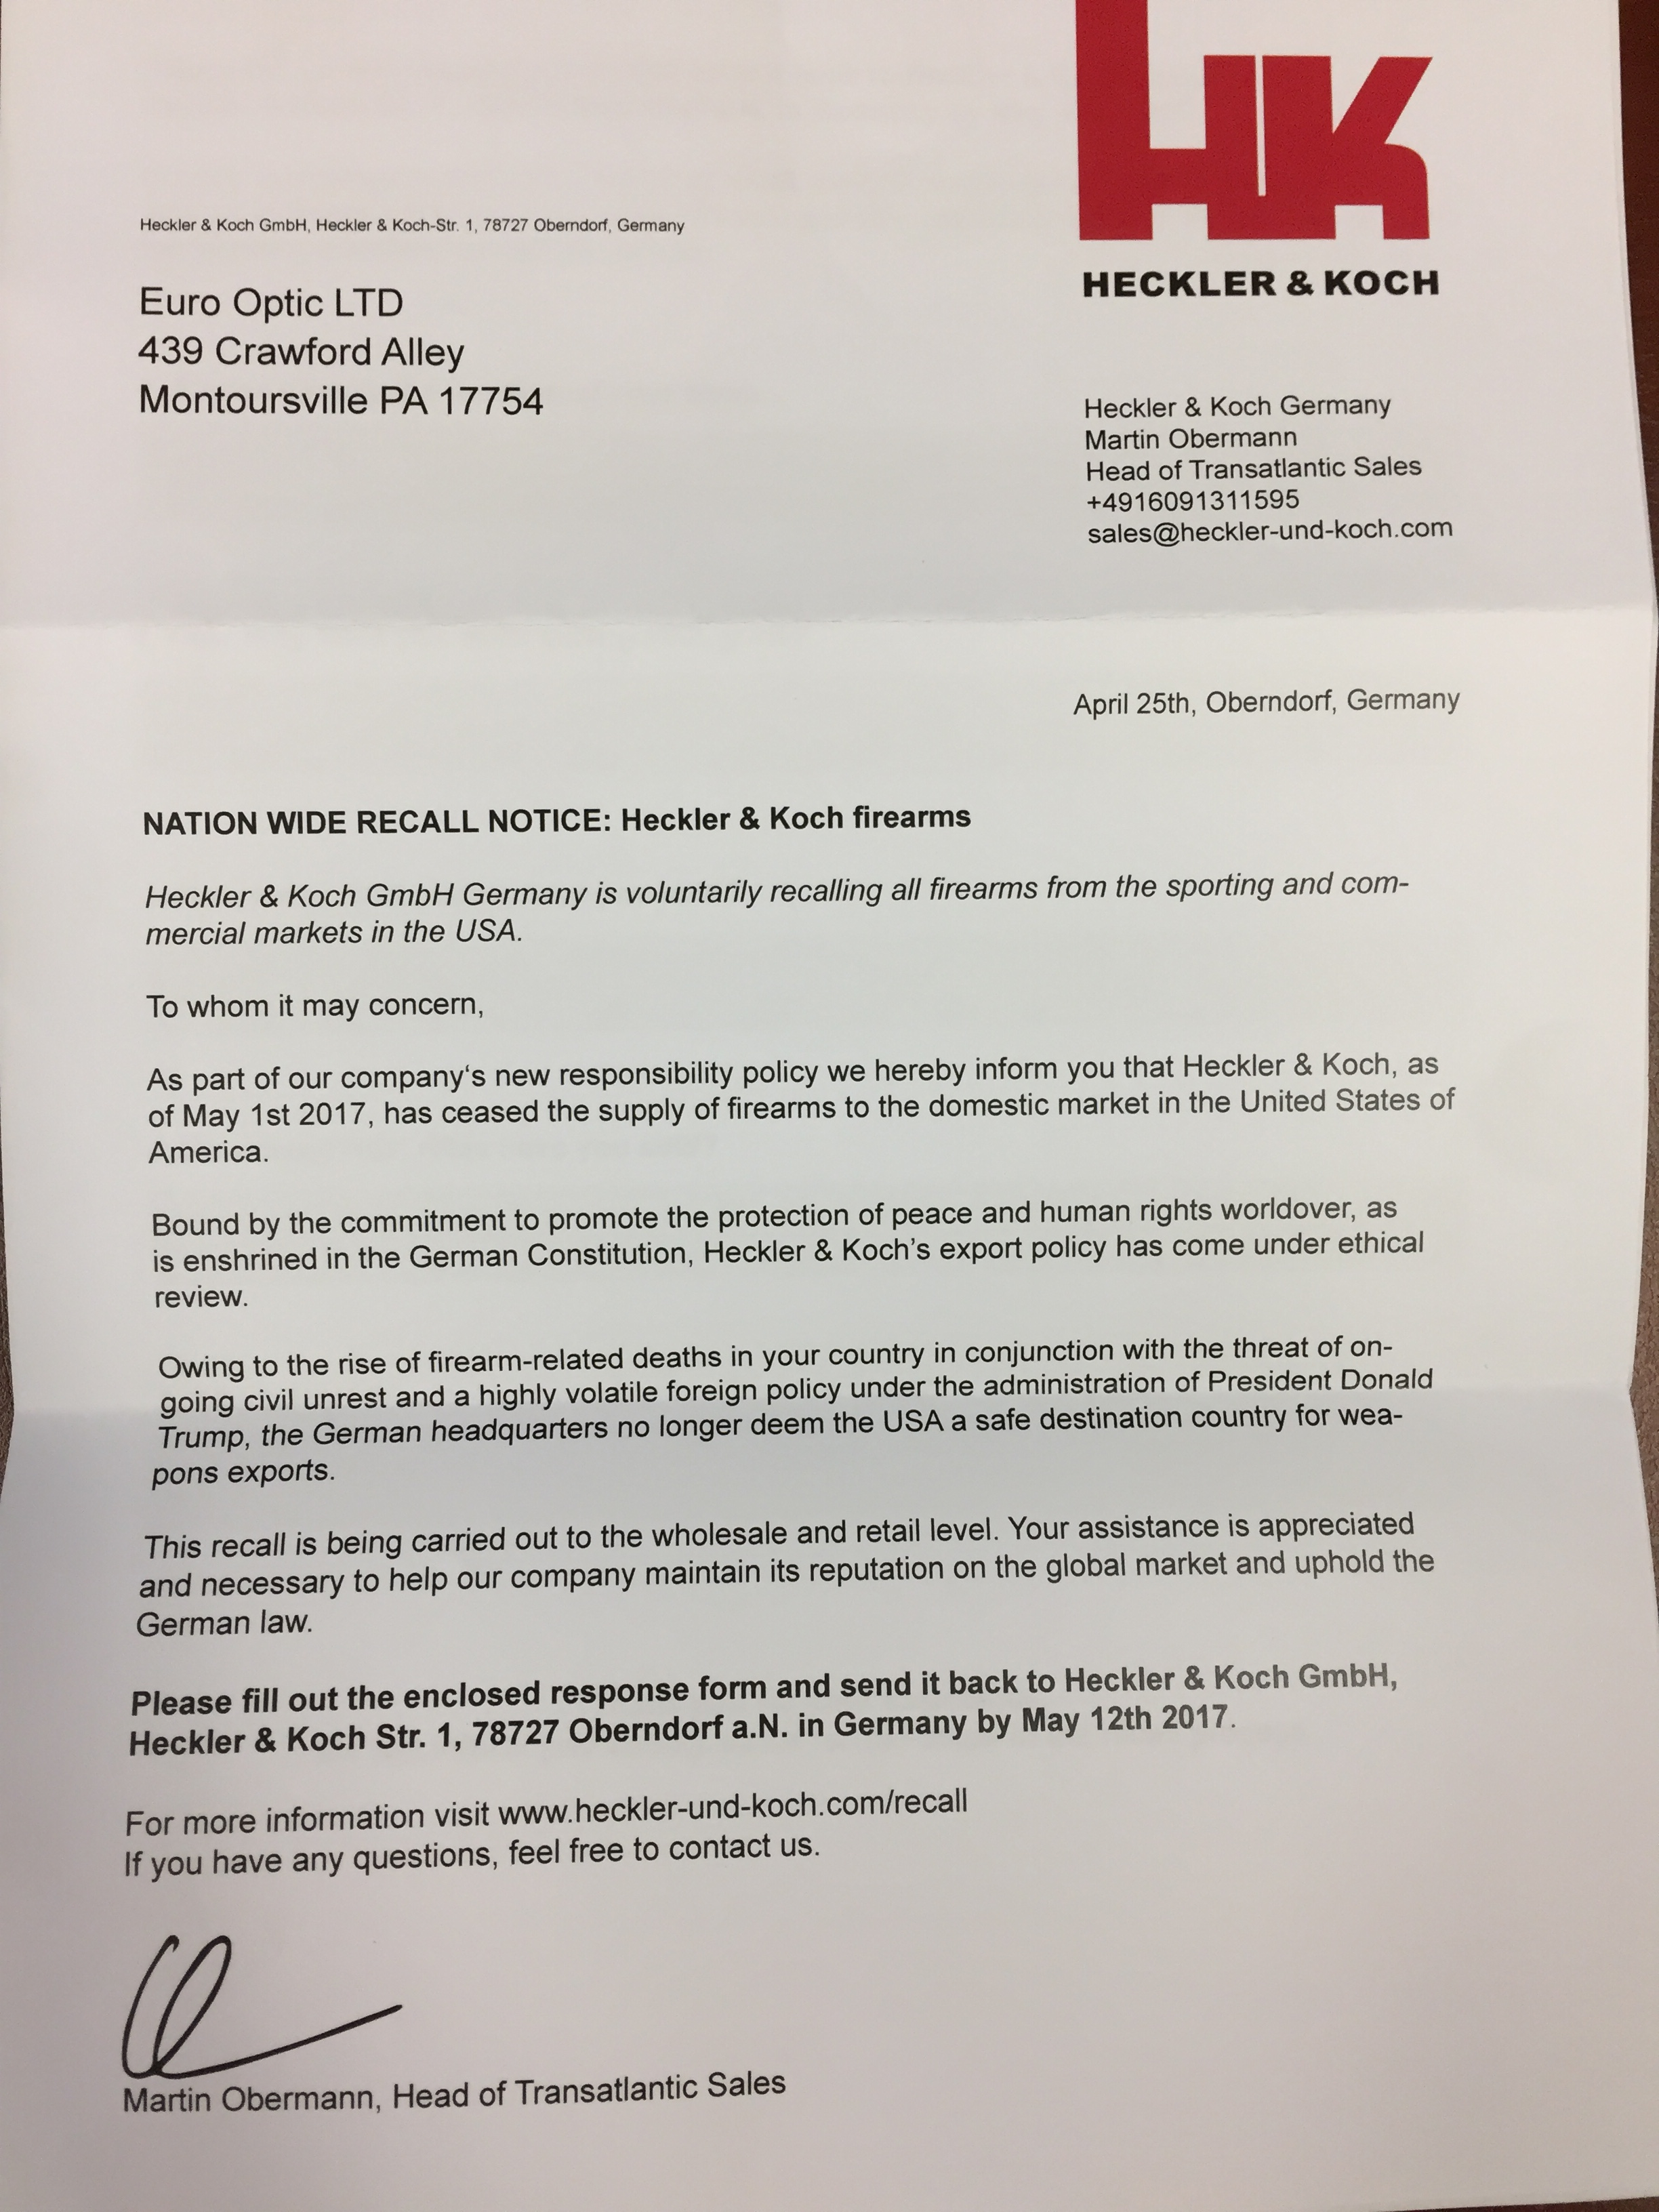 Letter Received from Heckler & Koch